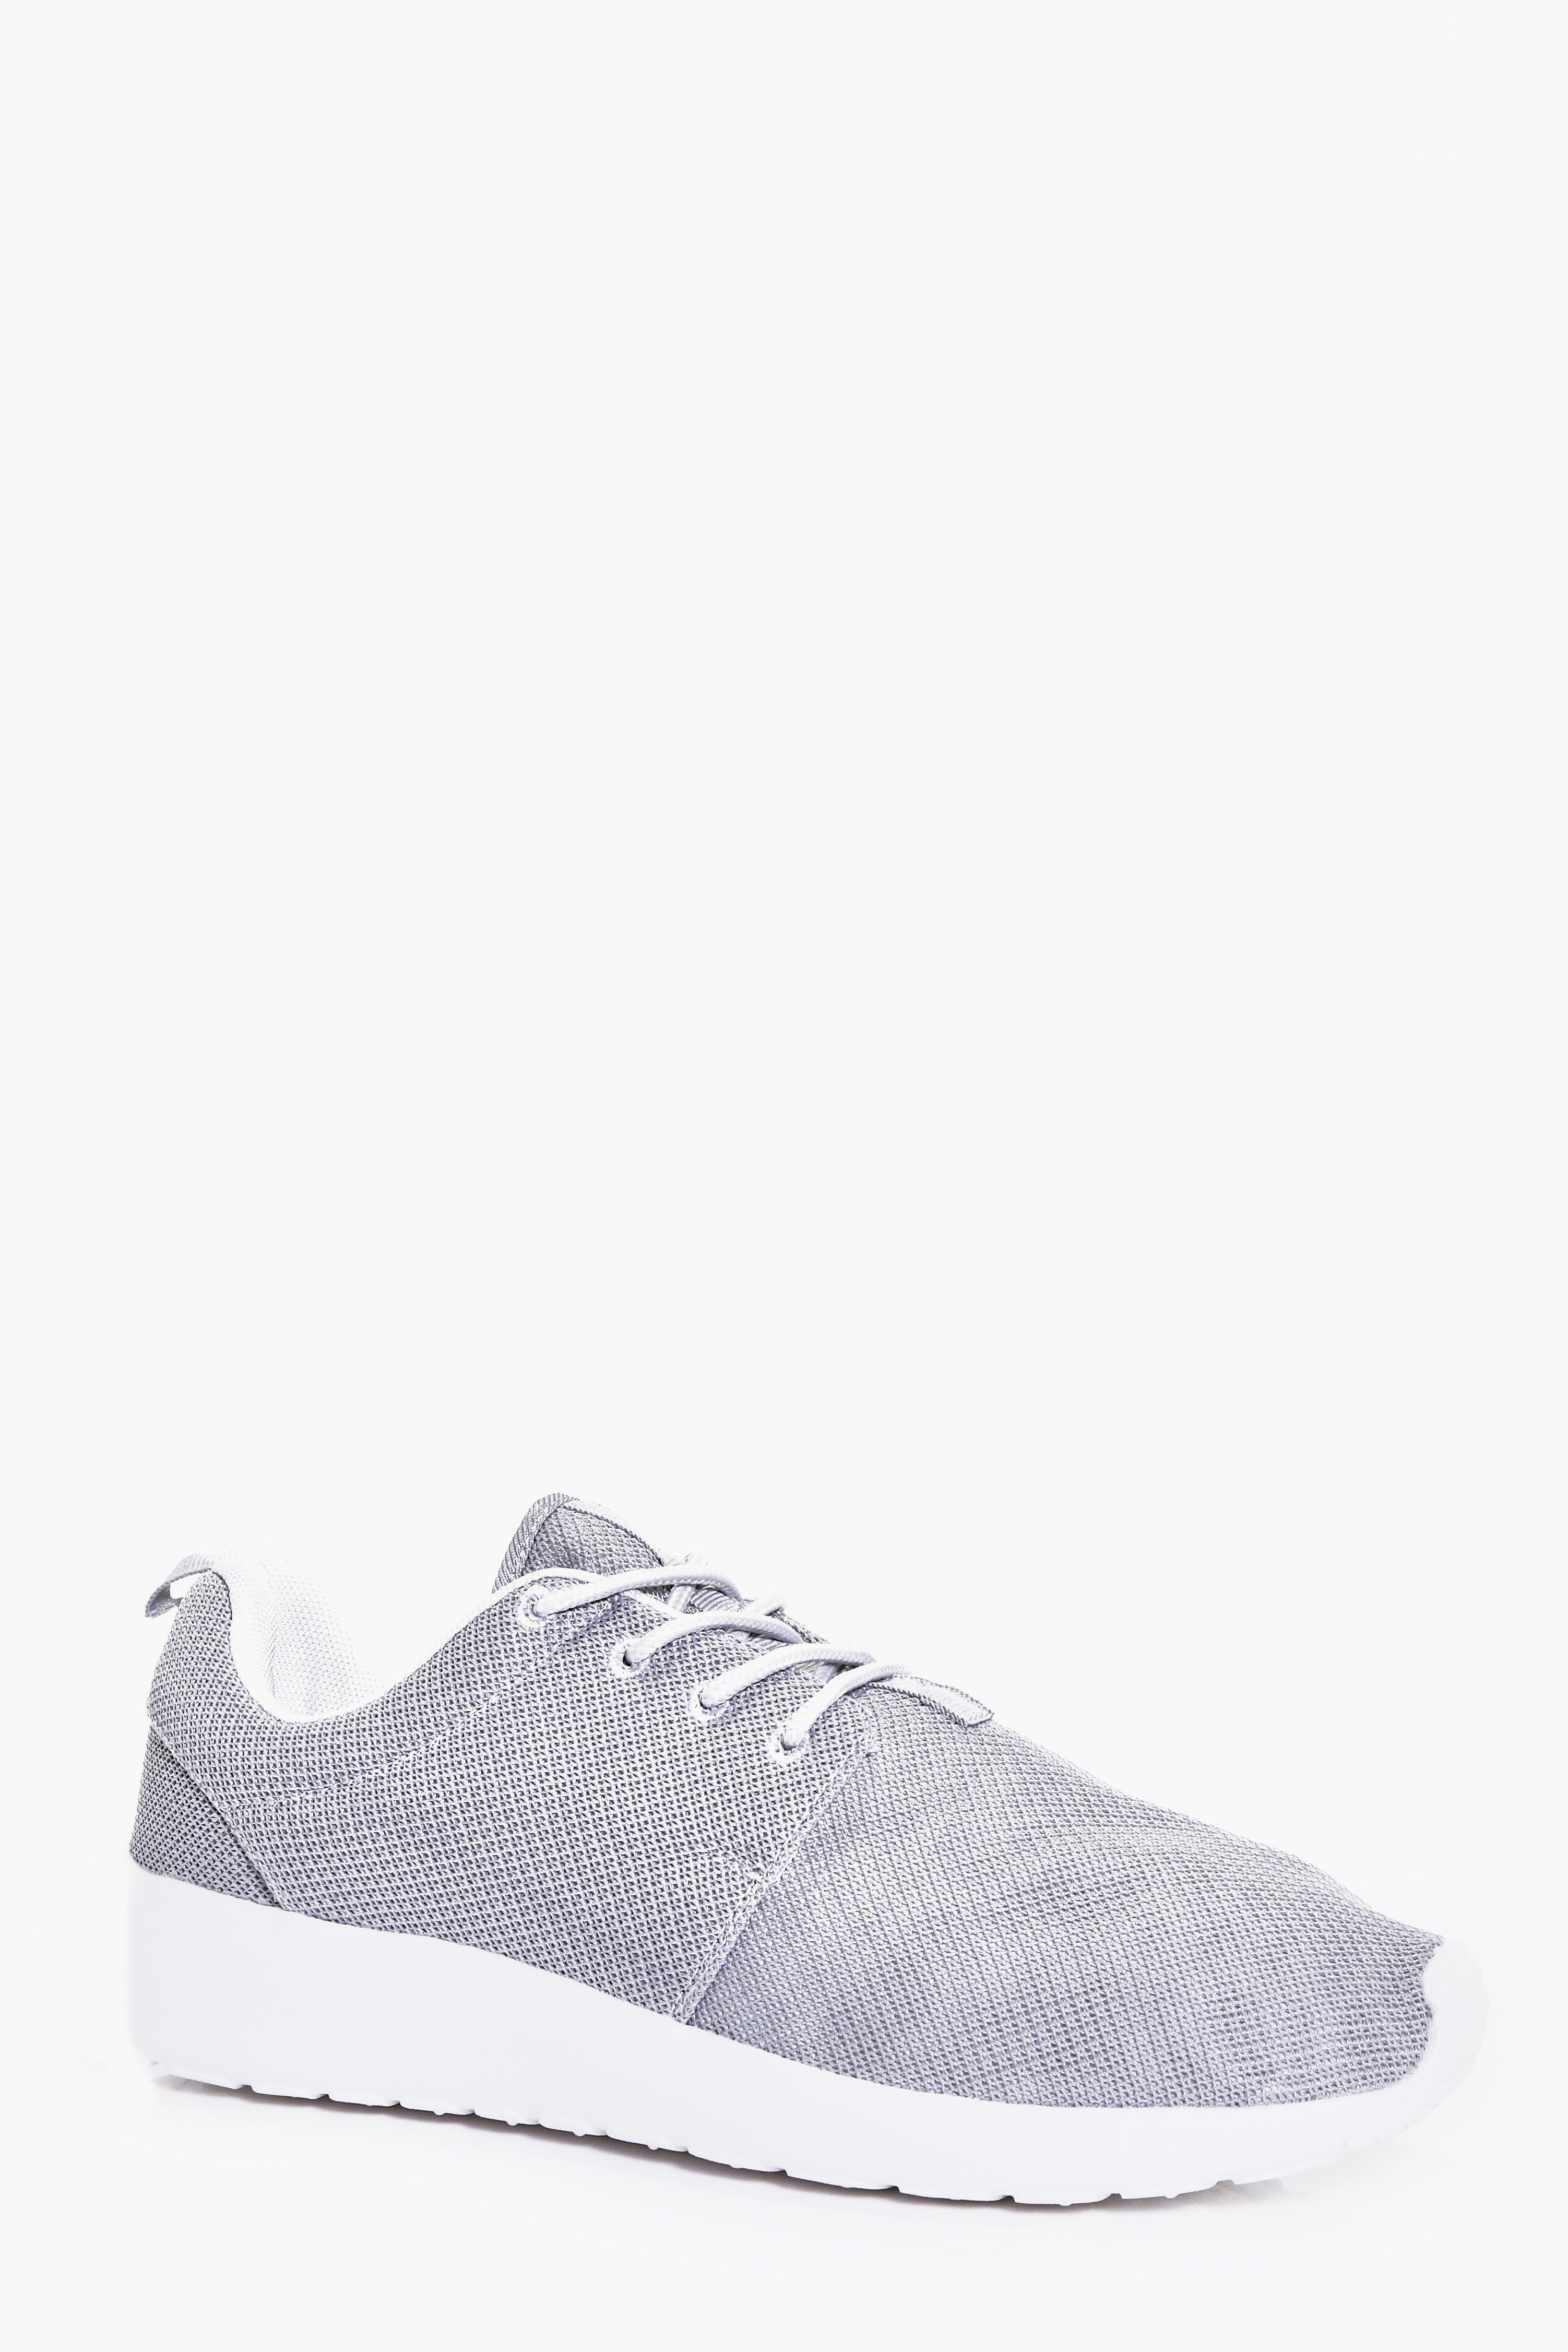 Product photo of Lace up running trainers grey